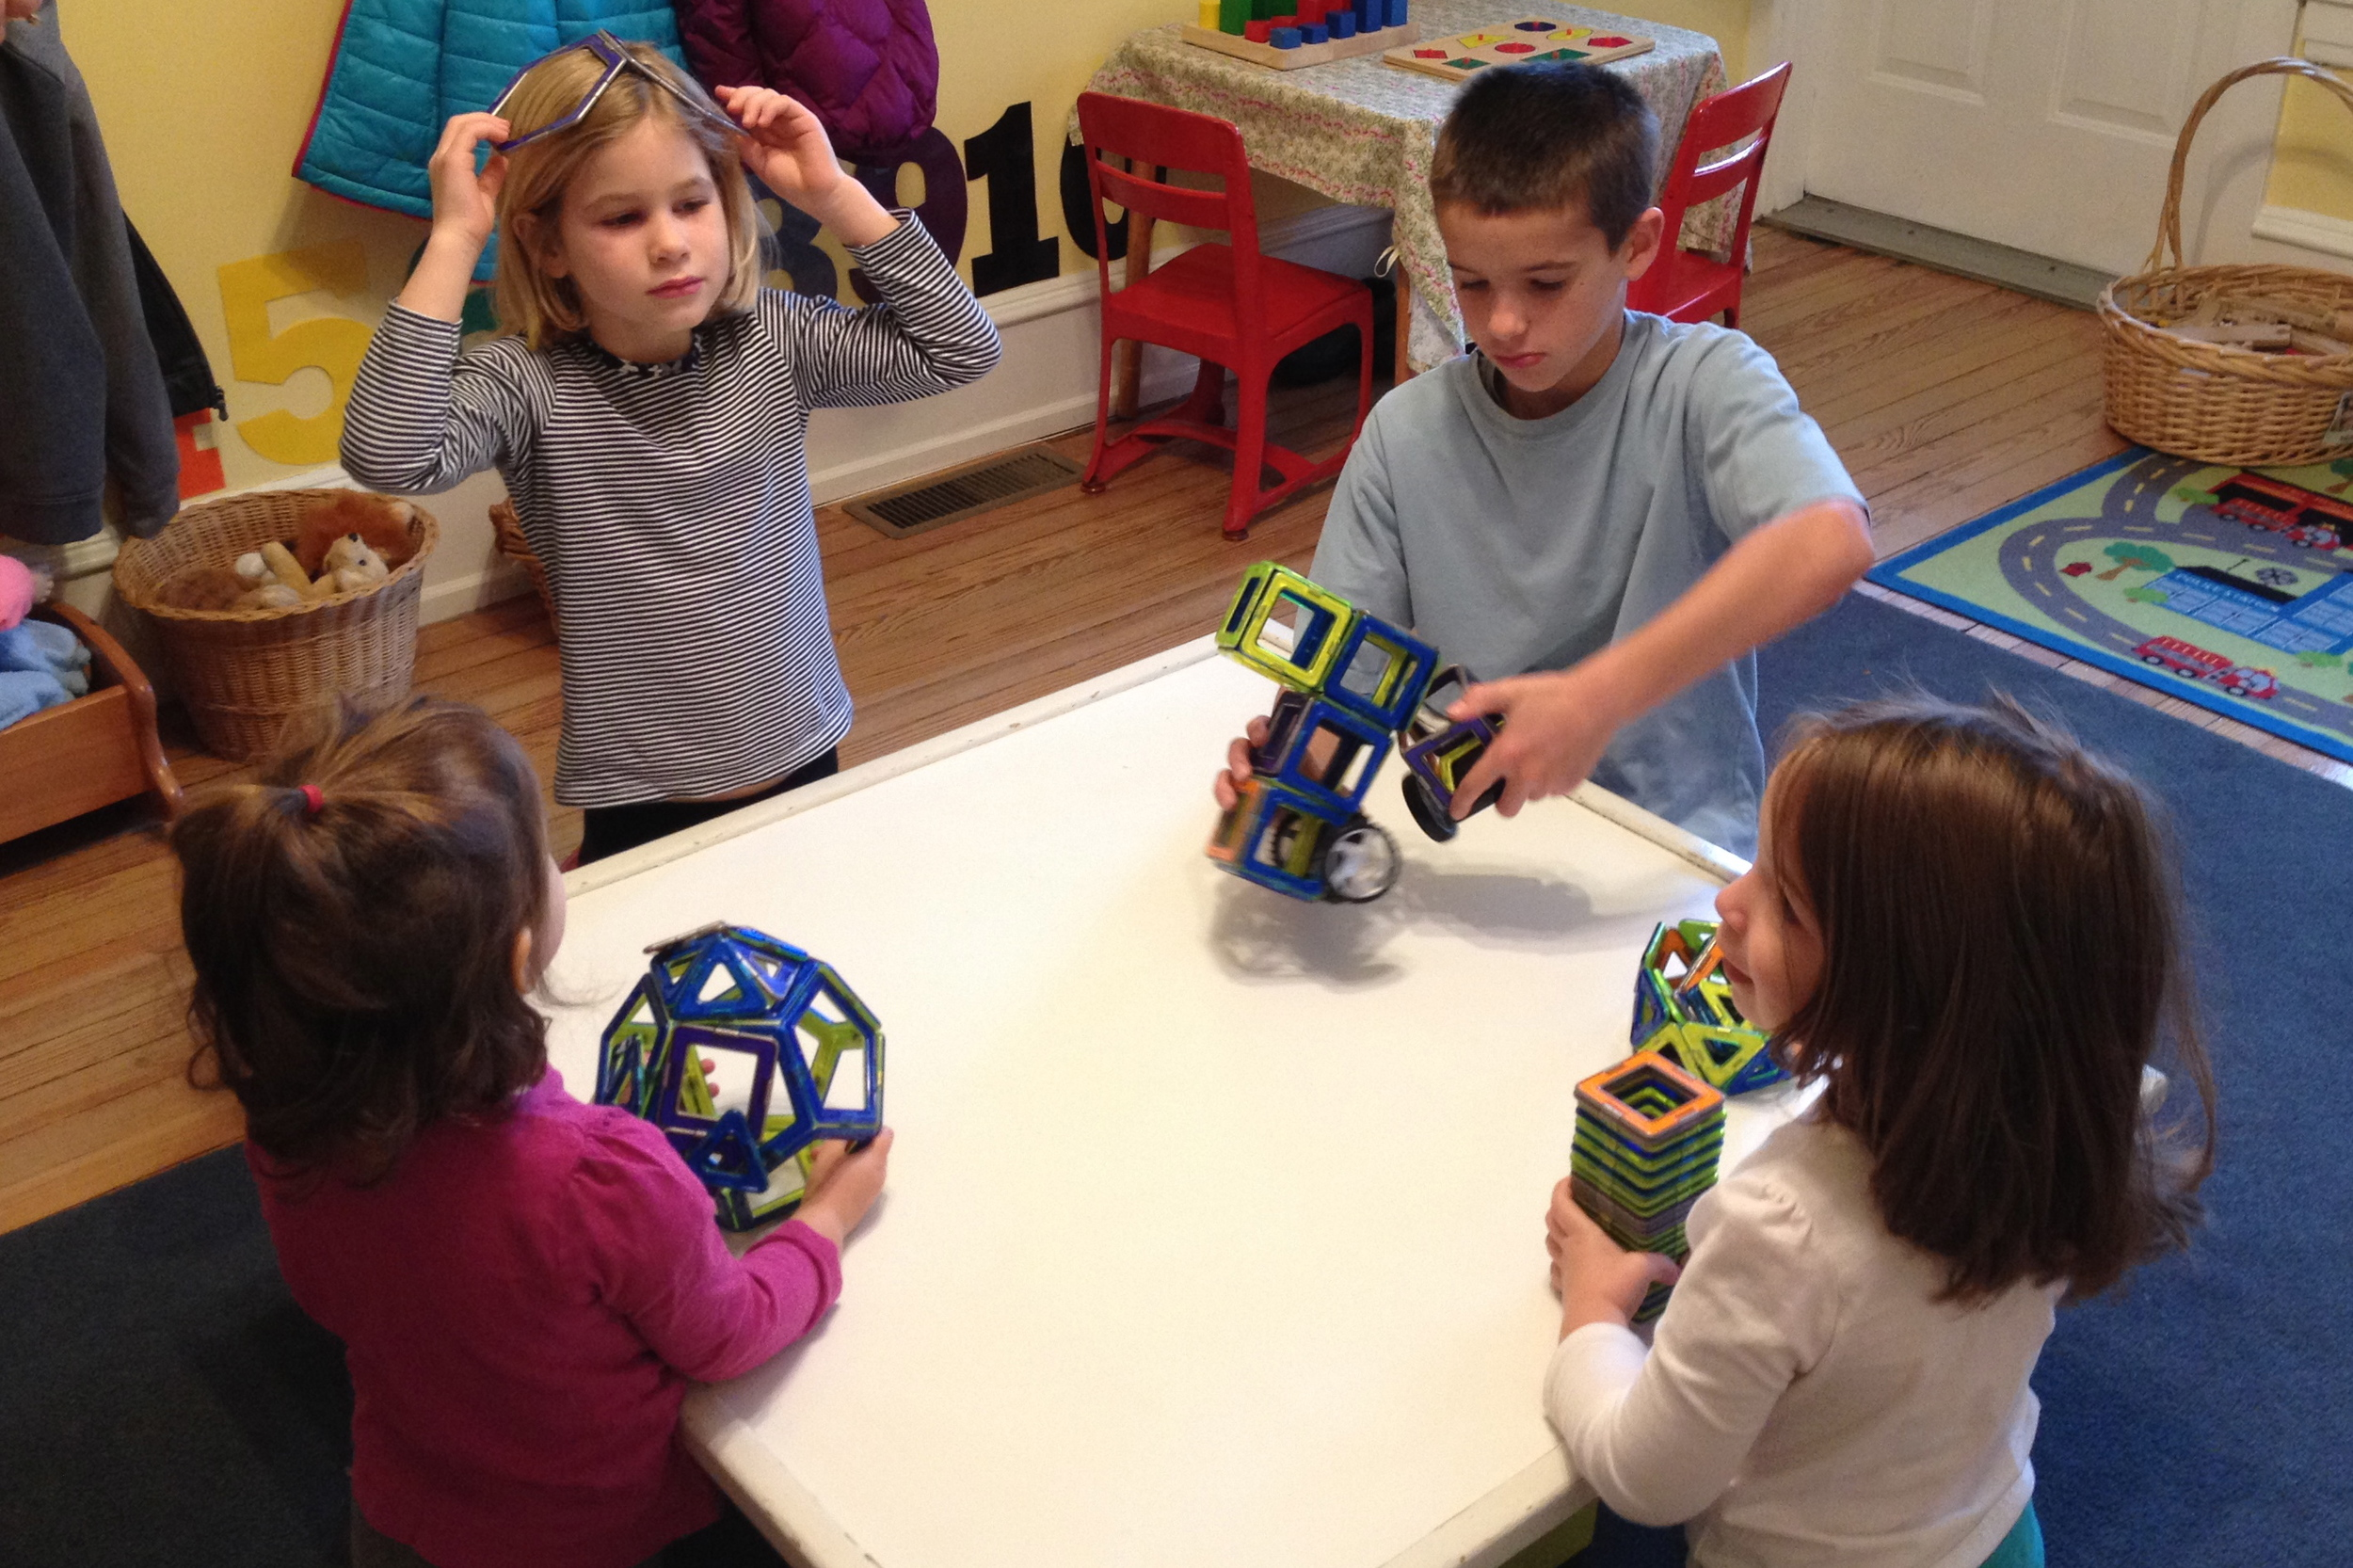 Nathaniel and Annabelle teach us how to build with Magformers